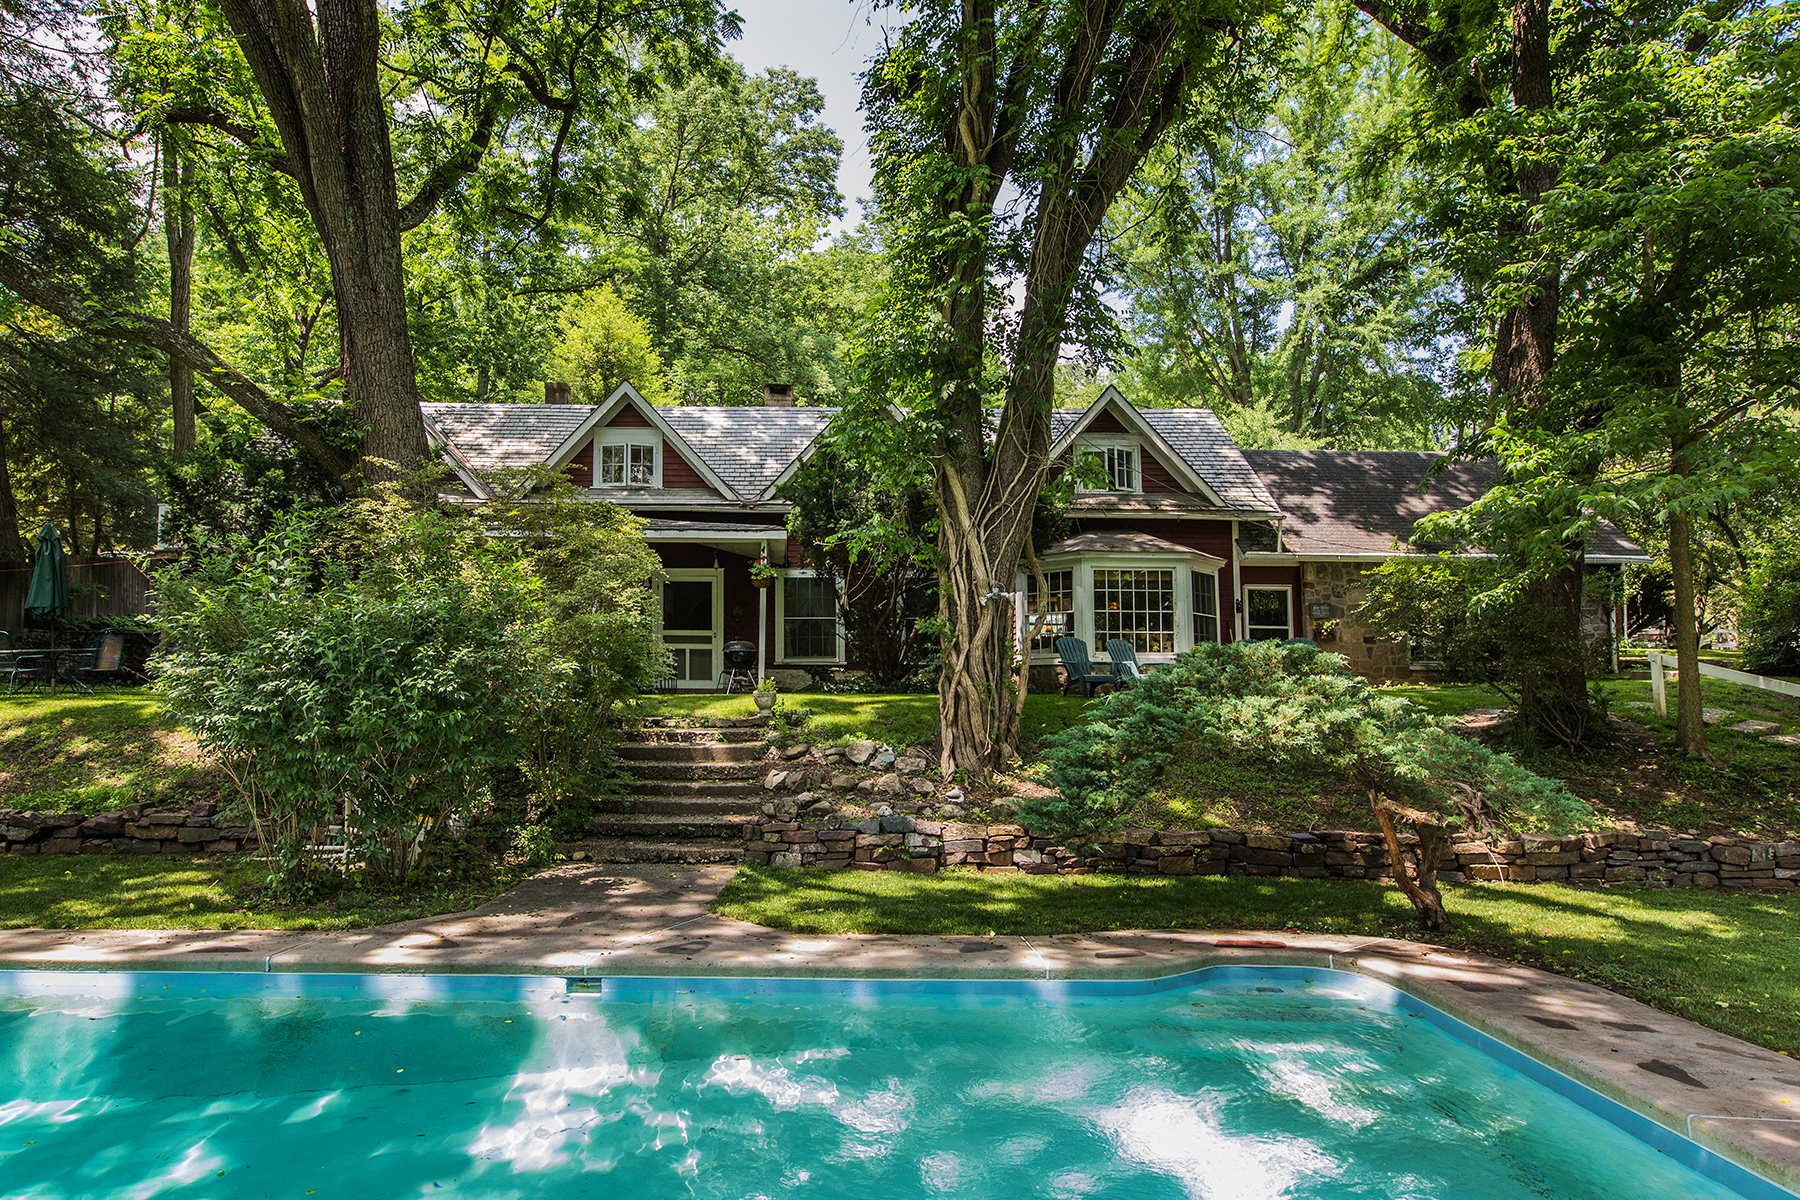 Property For Sale at New Hope, PA